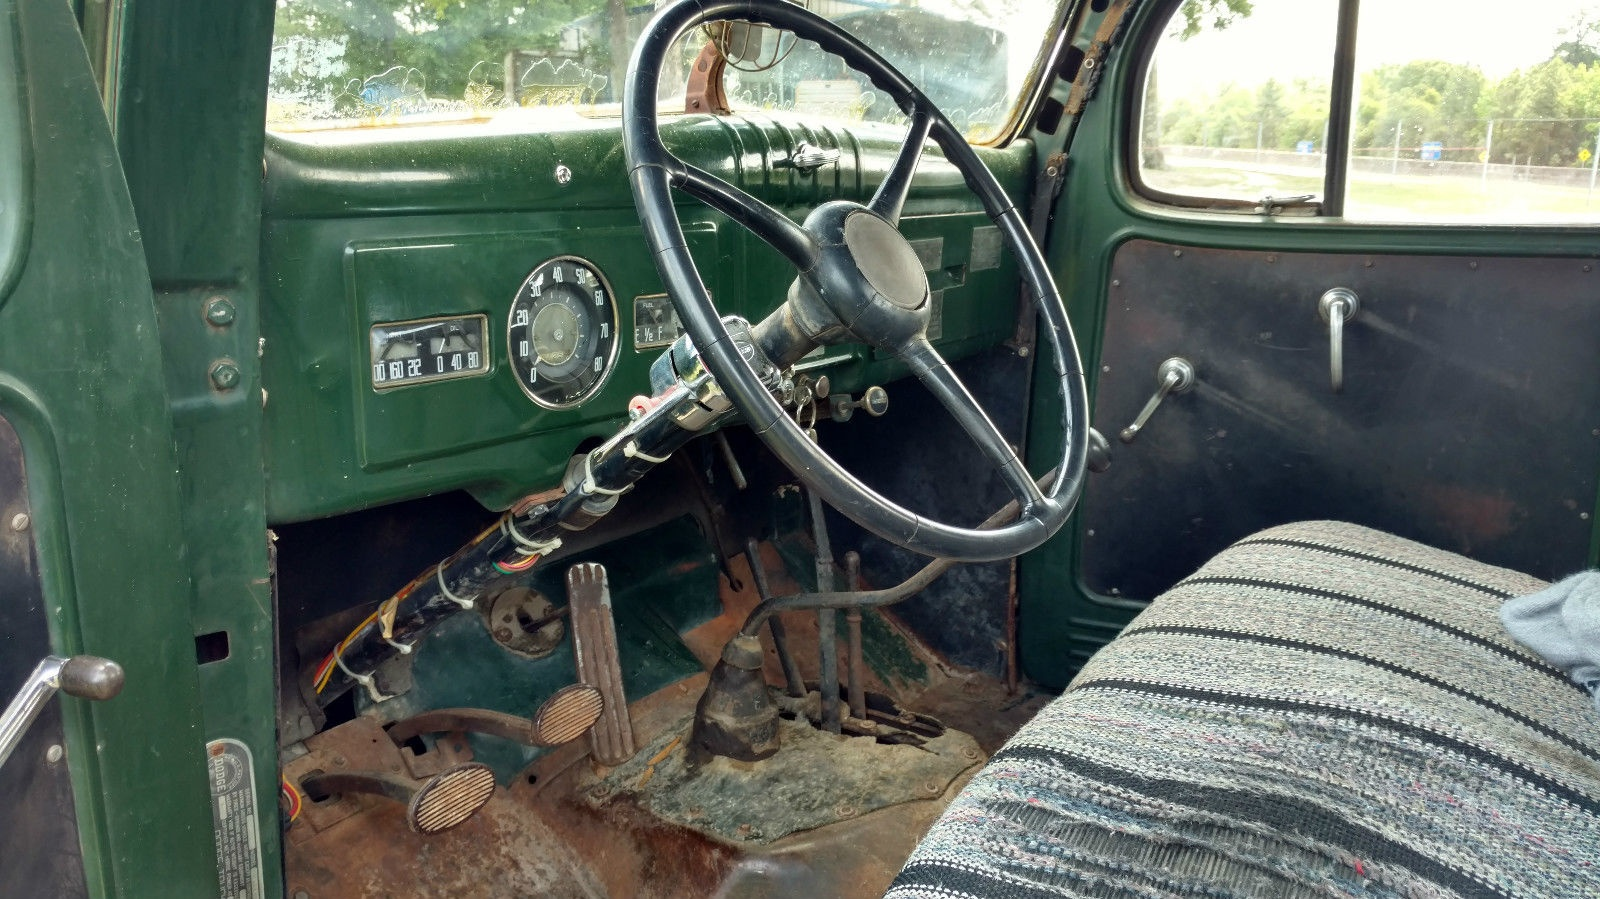 Chains Not Included 1949 Dodge Power Wagon Truck Seat The Floor Scares Me A Bit But Above That Things Look Pretty Decent Maybe Good Wire Brushing And Some Por 15 Would Do Trick To Keep Any Rust Under